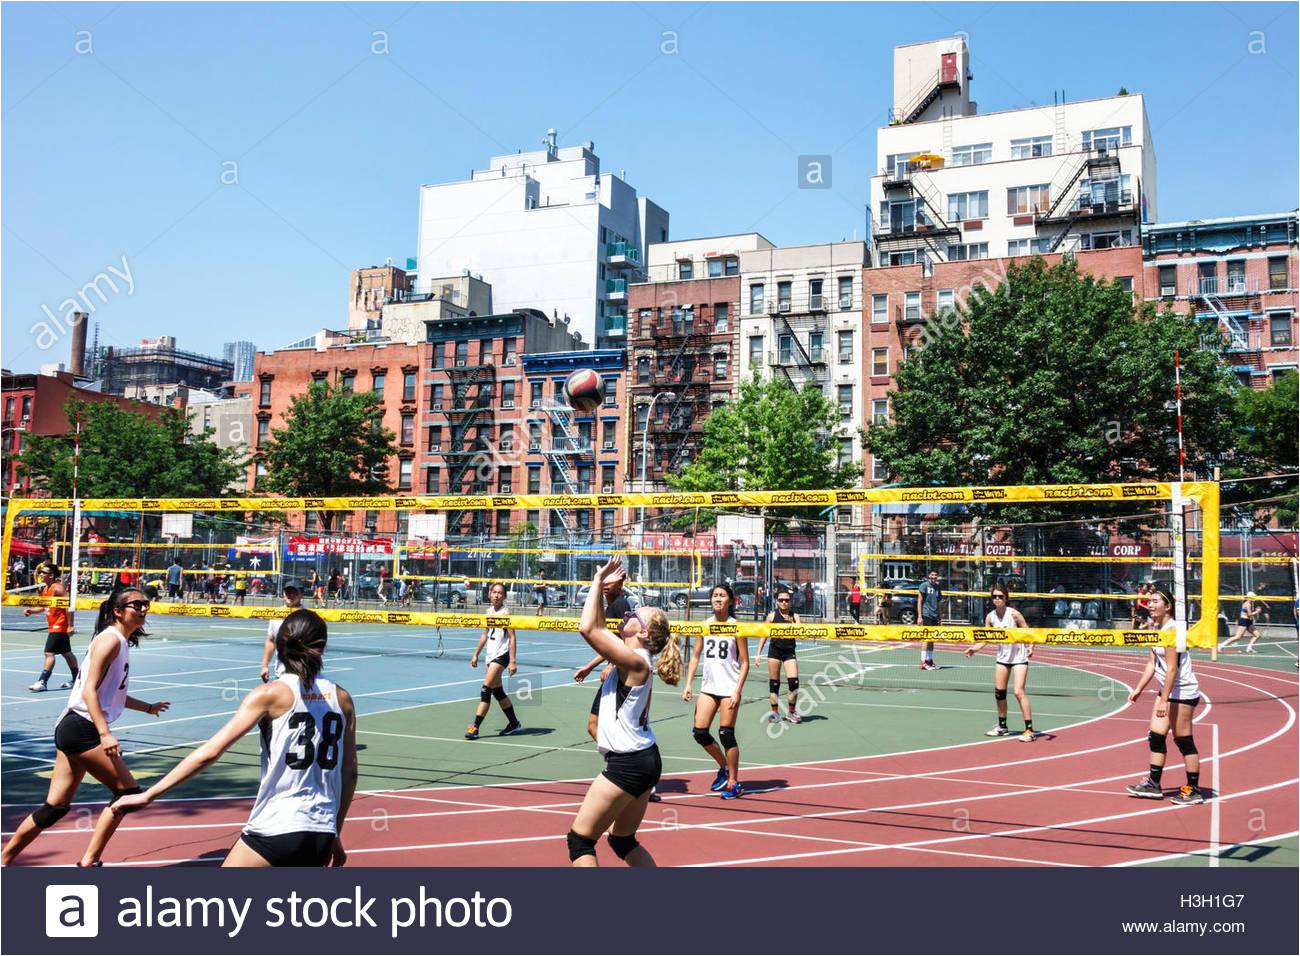 lower manhattan new york city nyc ny chinatown seward park public park athletic field recreational sports